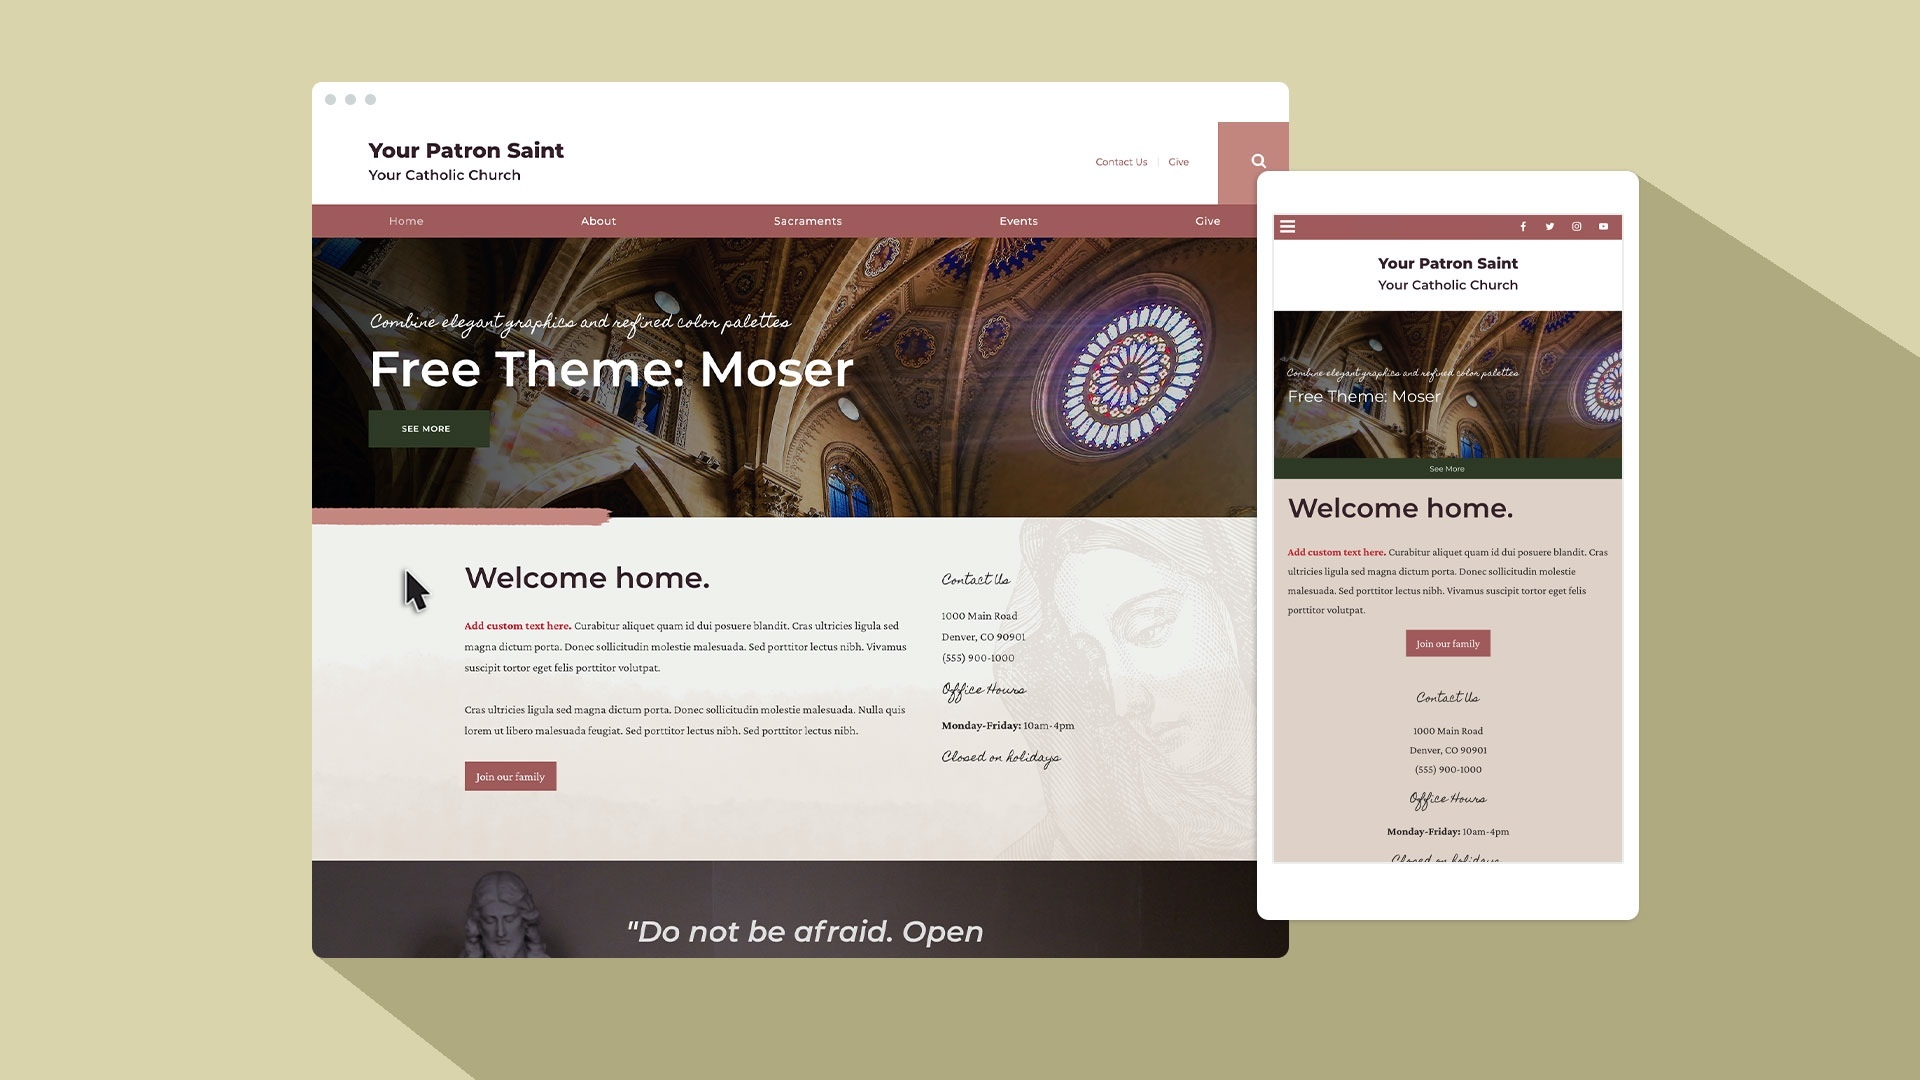 Learn the story behind Moser, eCatholic's newest free theme